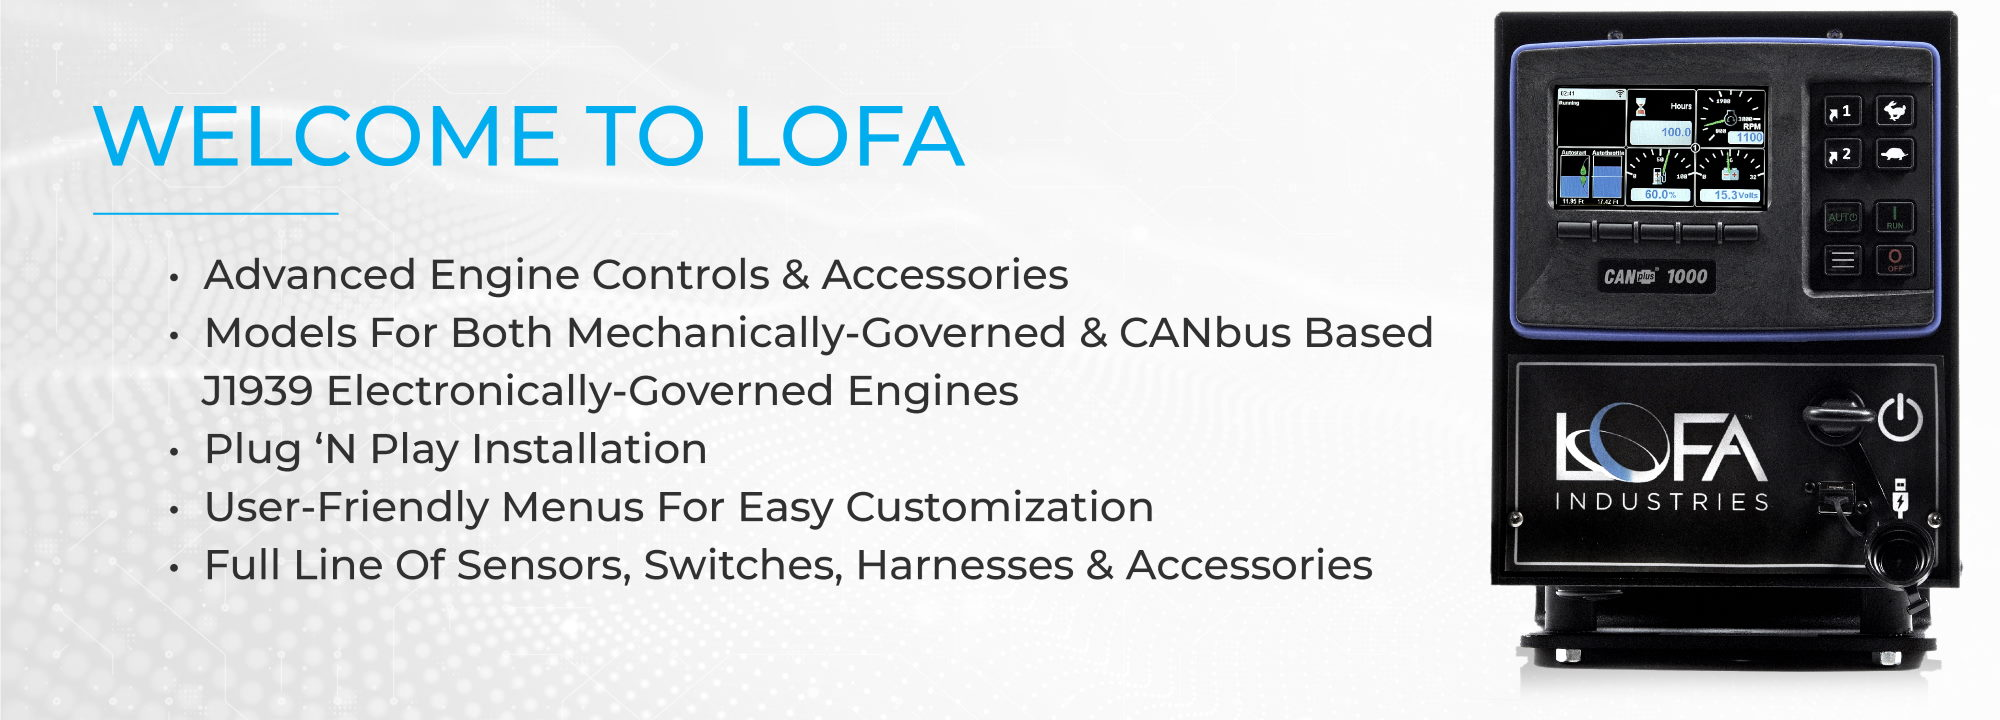 LOFA, advanced engine control panels